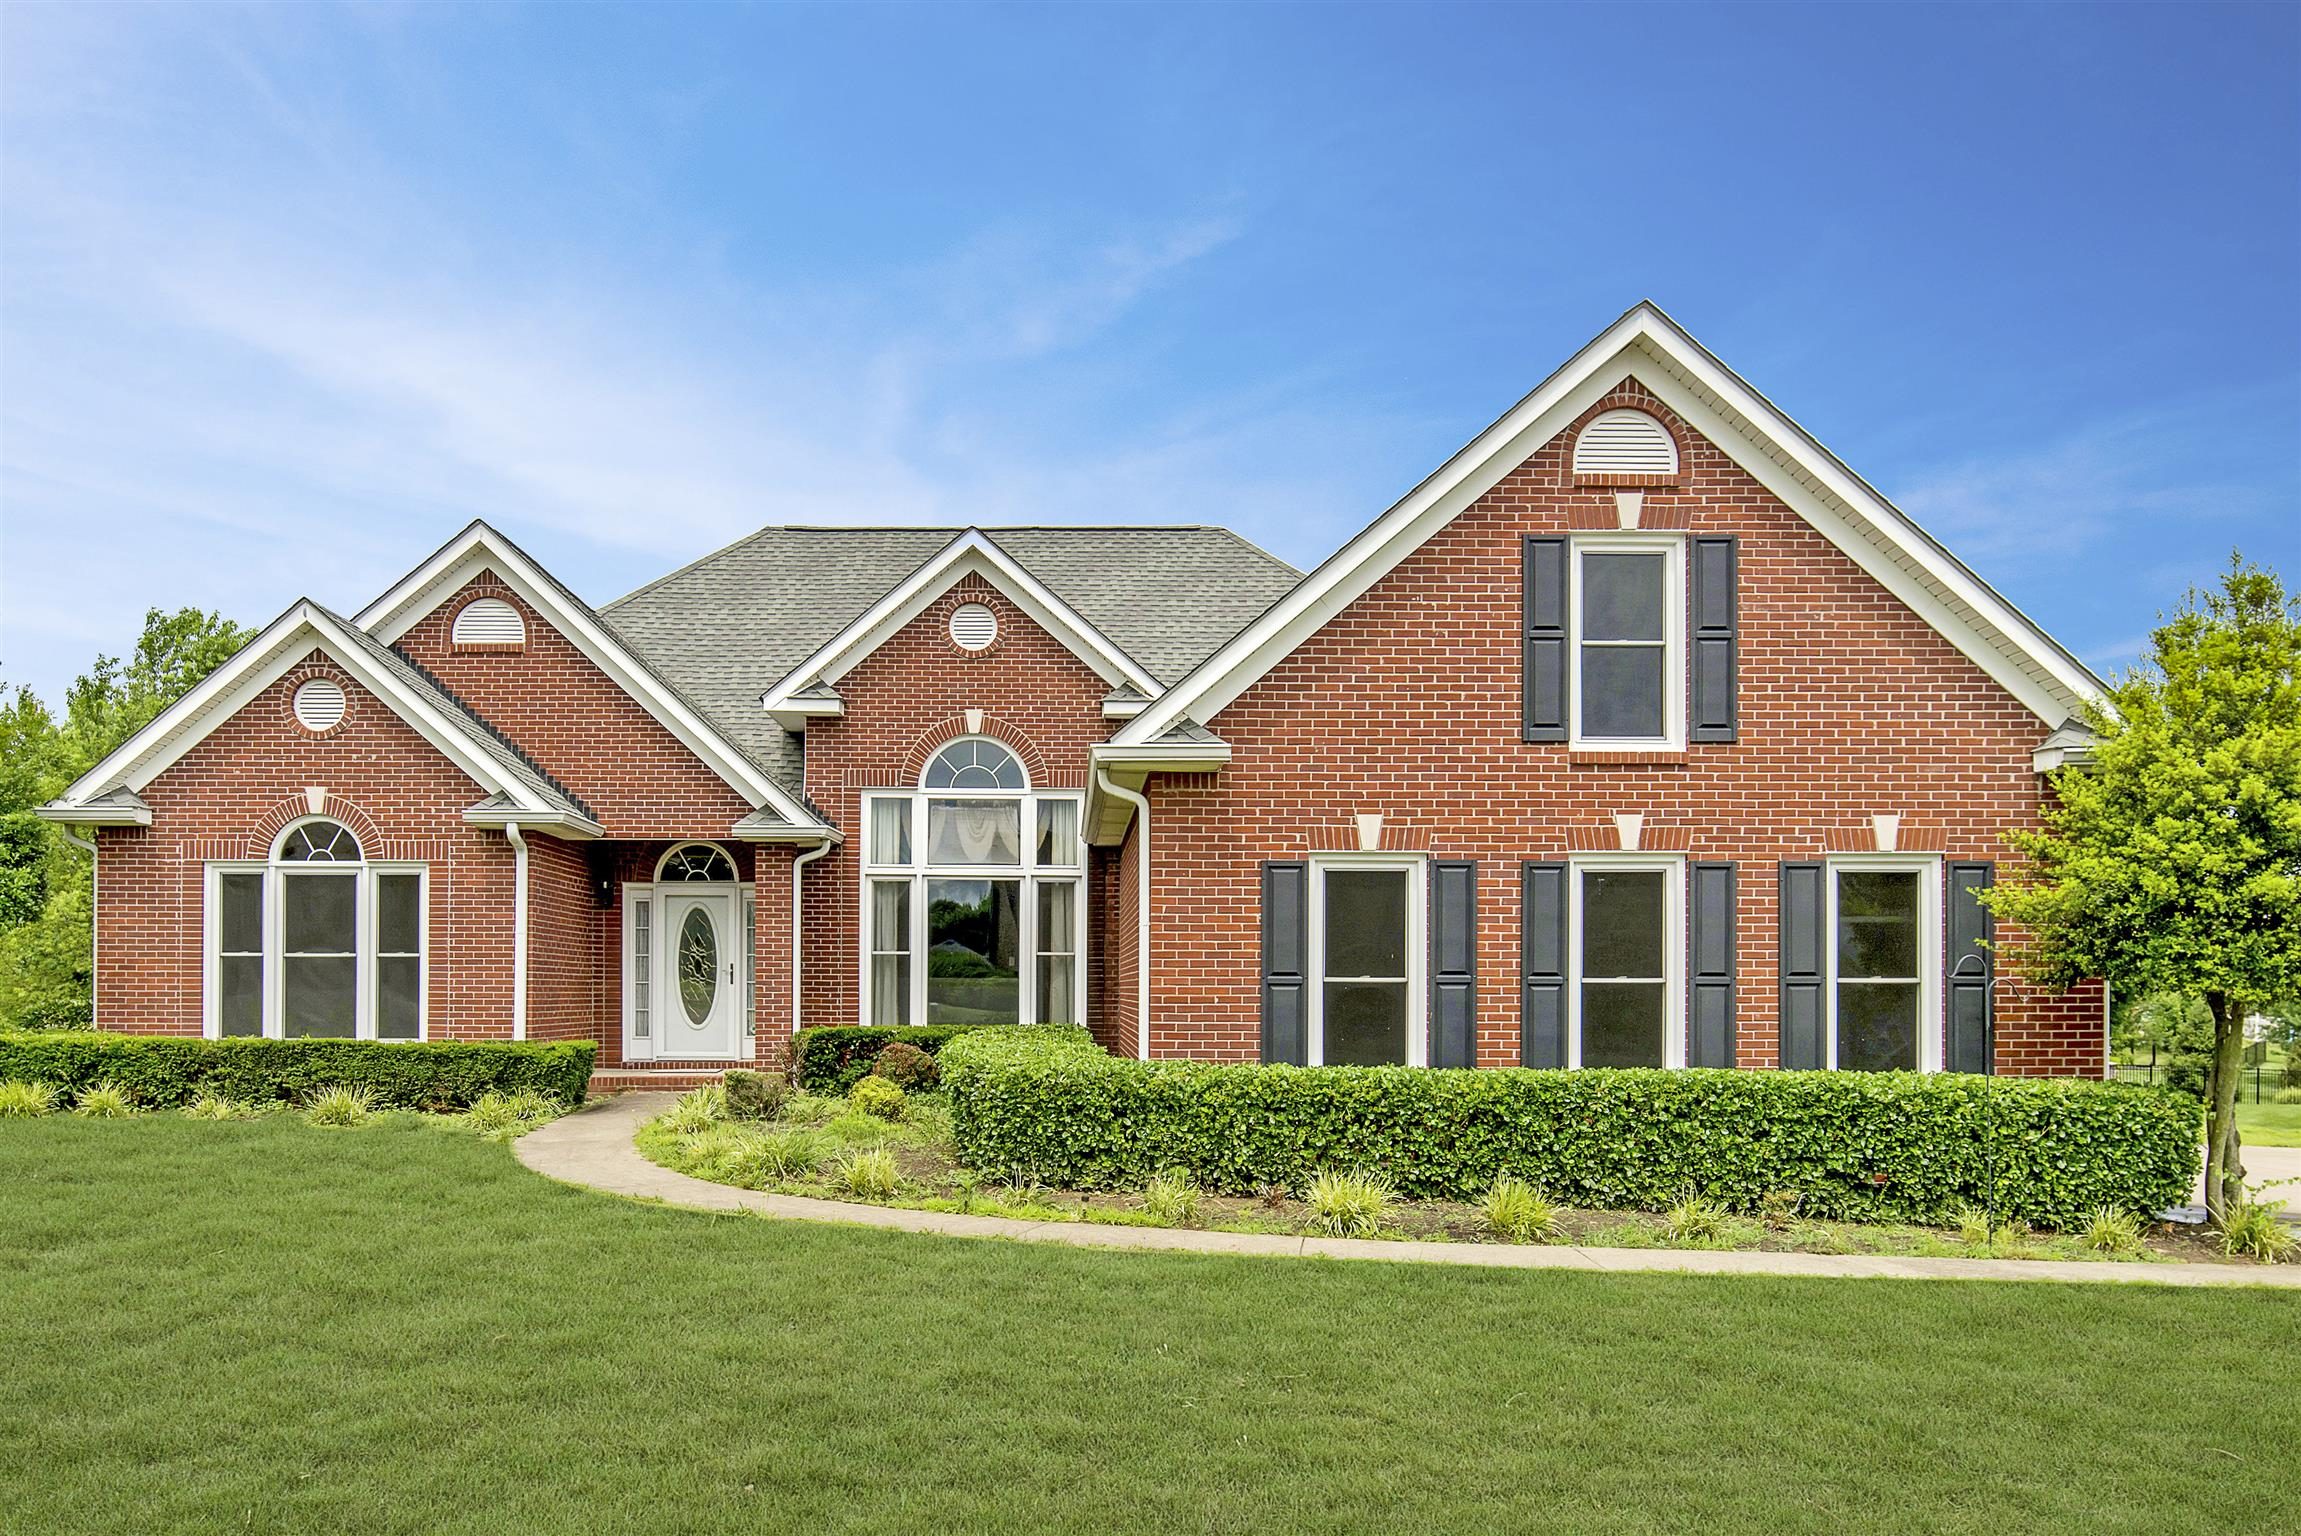 Sweet Home Property Management Clarksville Tn